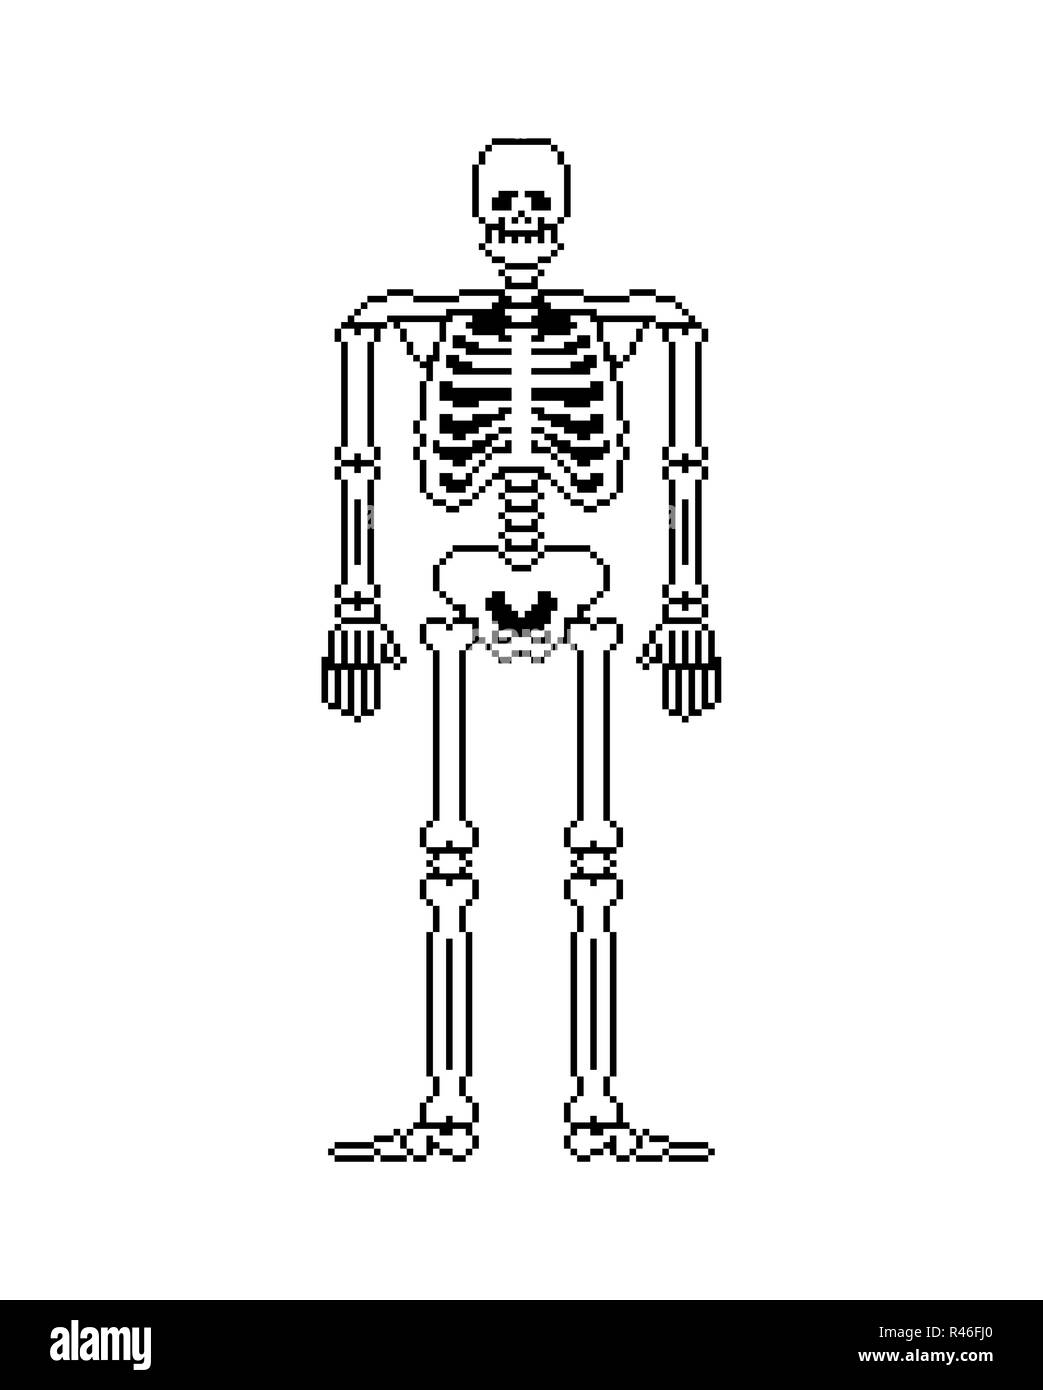 hight resolution of skull and bones anatomy 8 bit pixelate pelvic bone and ribs